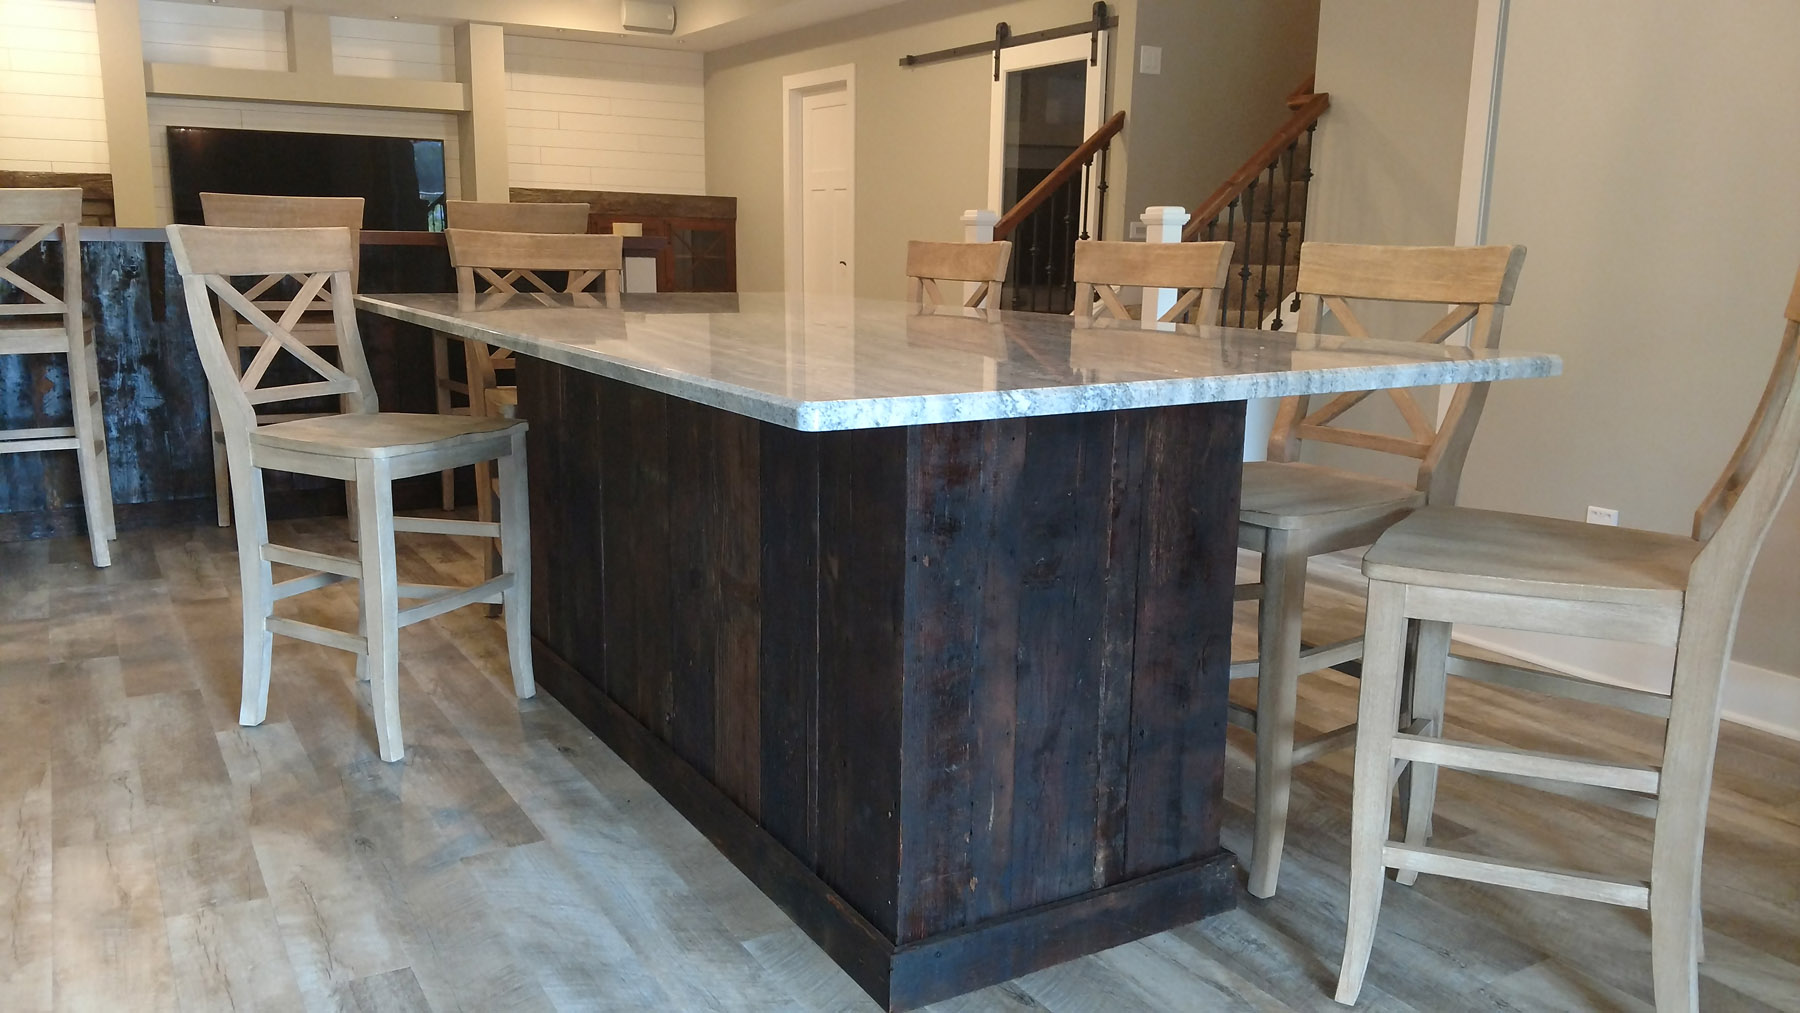 Huge center island bar table